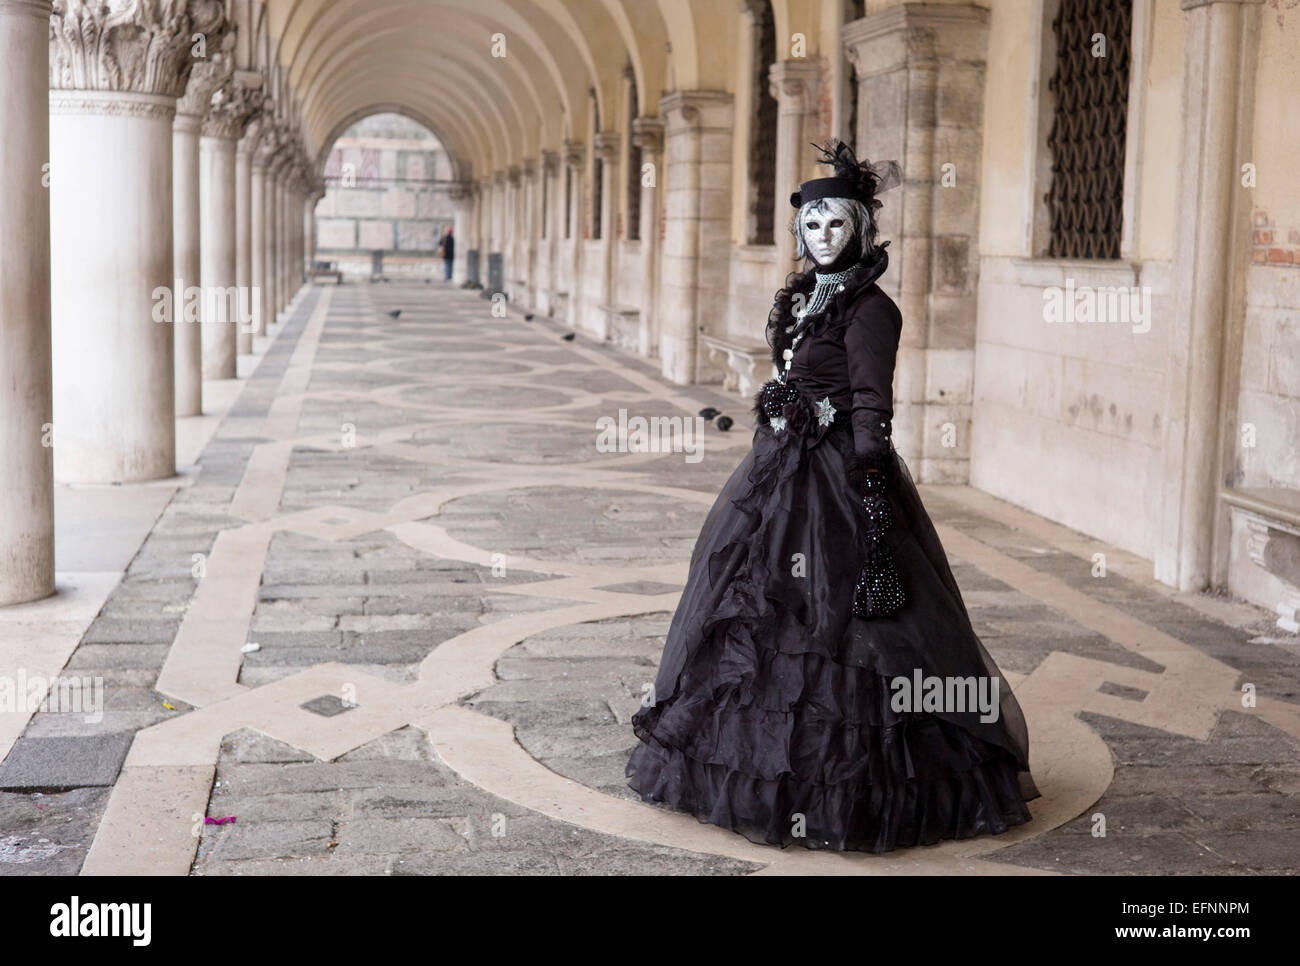 A reveller wearing elaborate costume and mask poses for th camera during the Carnival of Venice, Italy Stock Photo